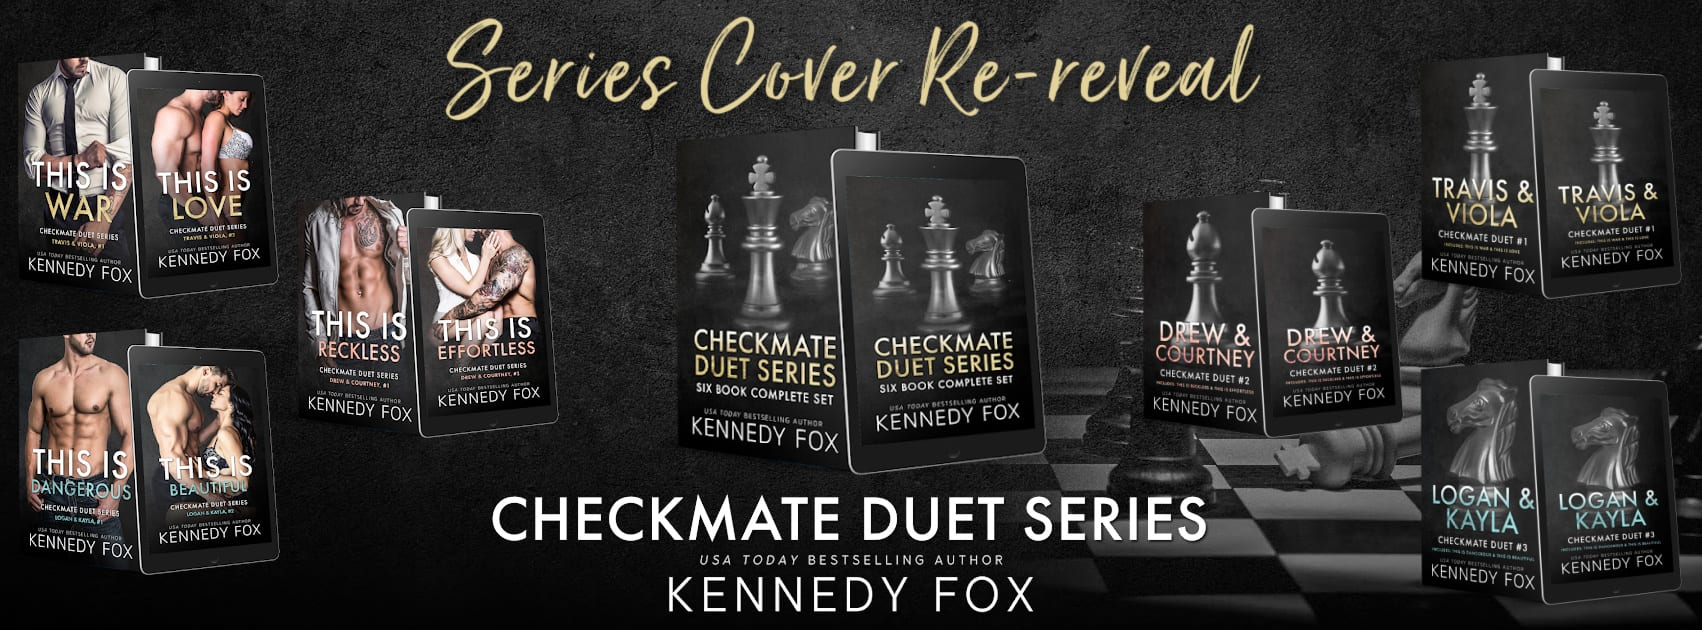 Cover Re-reveal for The Checkmate Duet Series by Kennedy Fox